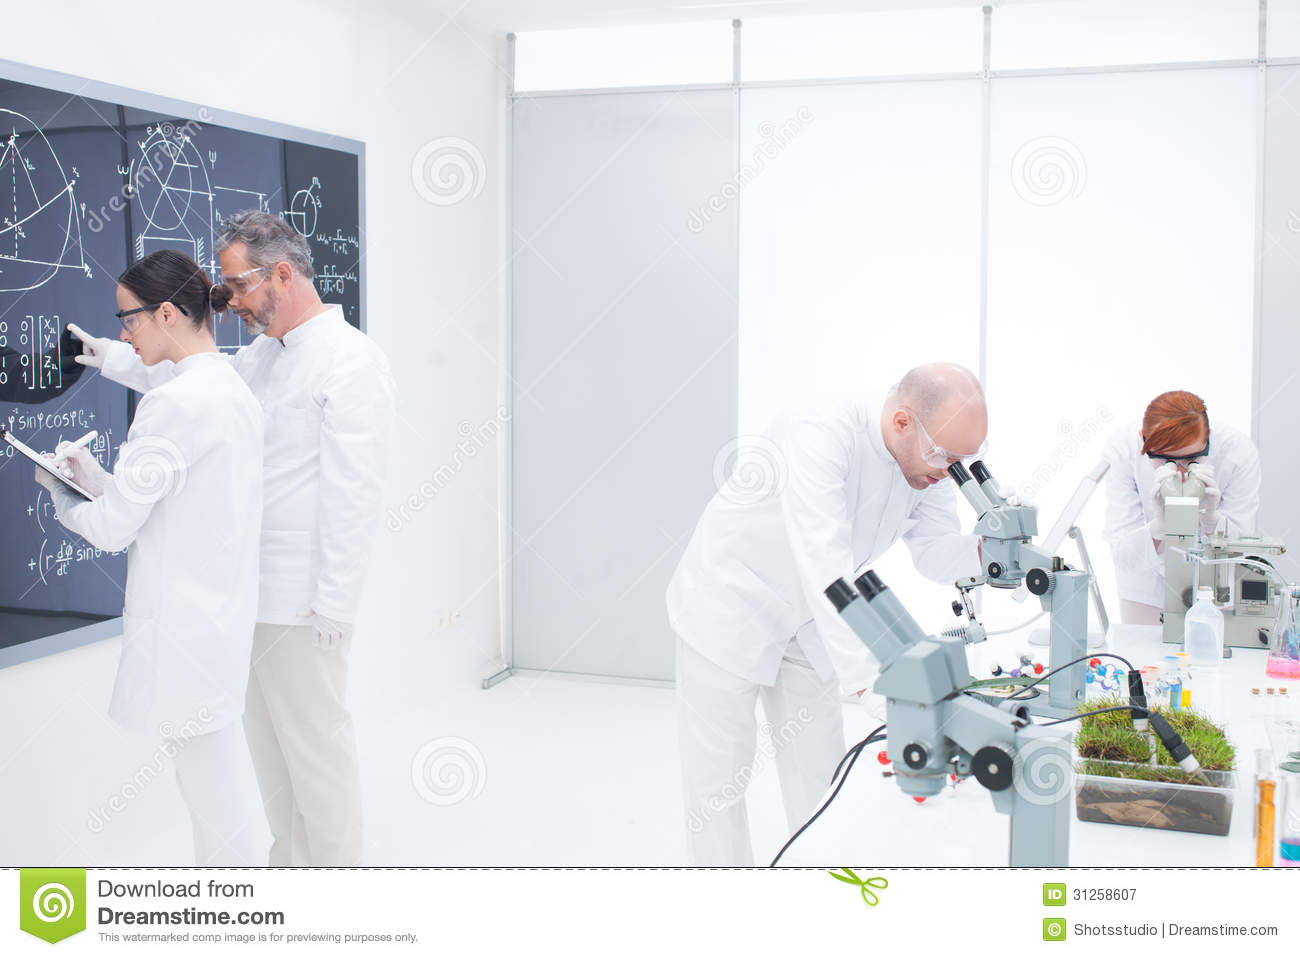 General view of a teacher in a chemistry lab pointing formulas on a